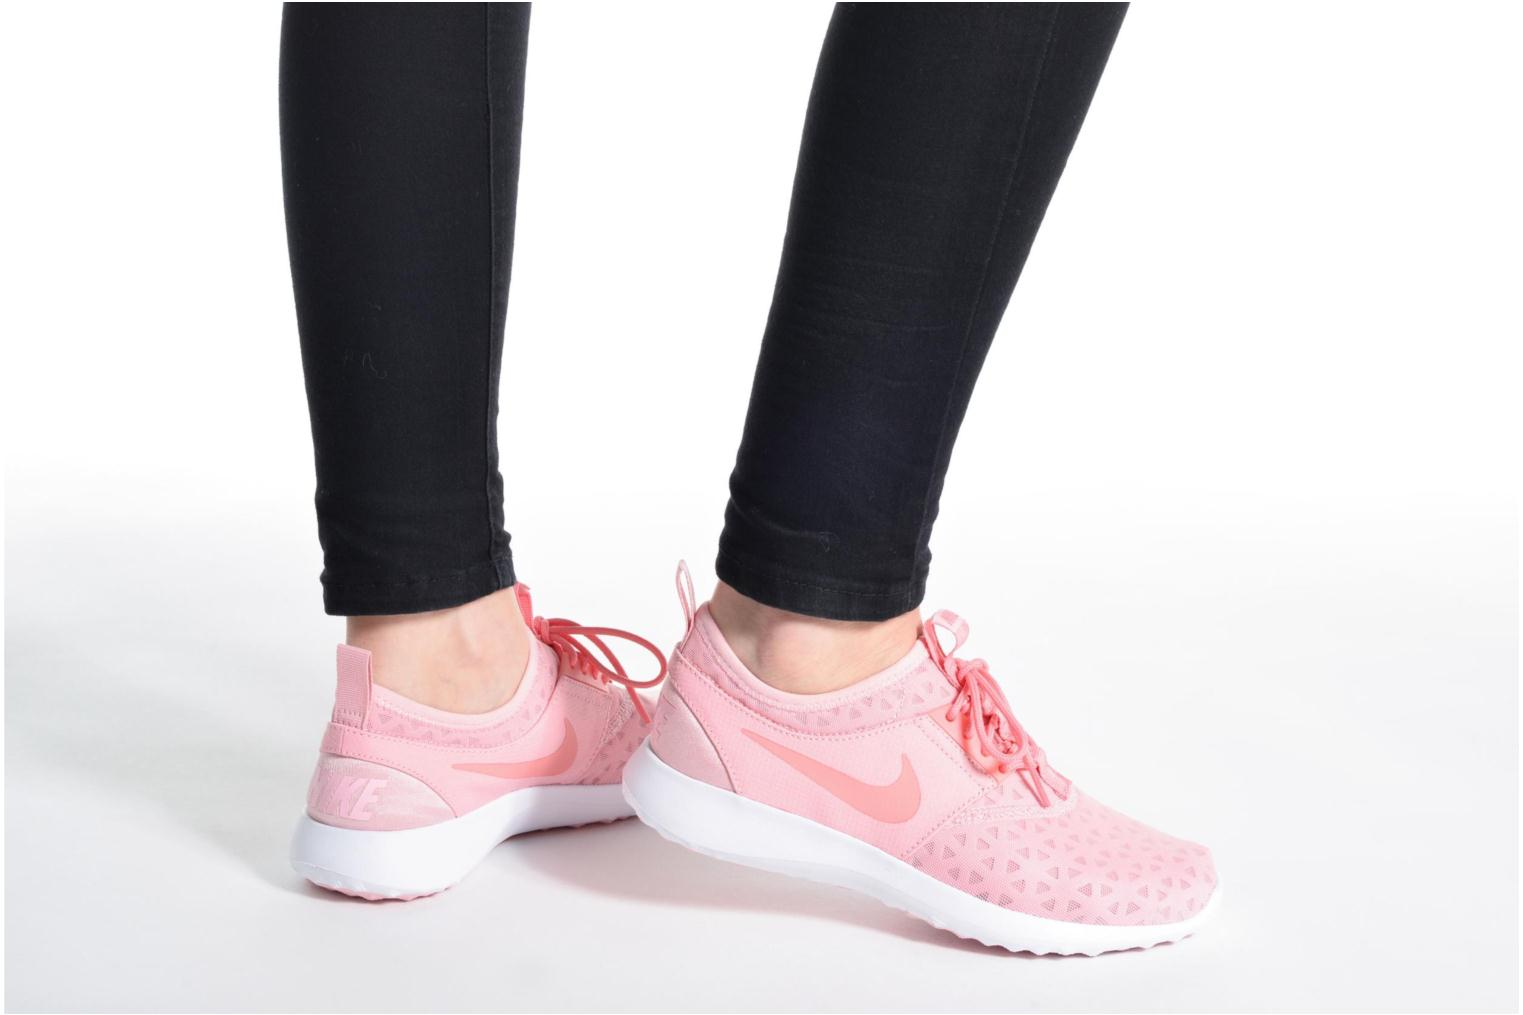 Baskets Nike Wmns Nike Juvenate Rose vue bas / vue portée sac